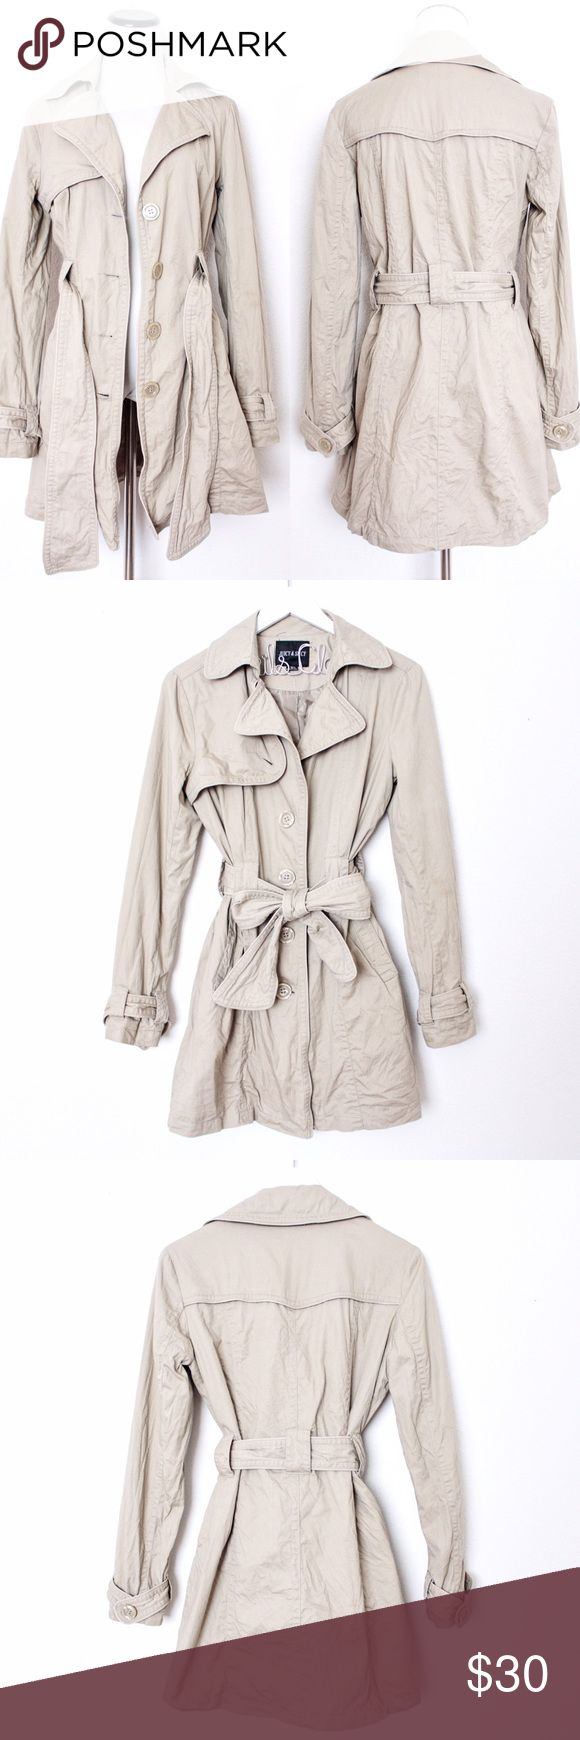 "Khaki Long Lightweight Trench Coat Juicy & Spicy ⑊ Size M  ⌁ Measurements: 32"" length 20"" bust (pit-to-pit) 24.5"" sleeve length 16.5"" shoulder  ⌁ Material: 100% cotton  ⌁ Condition: New without tags! Missing a button on the flap as shown.  Comment below if you have any questions. Please make all offers using the ""offer"" button. No trades. No holds. Comes from a smoke-free/pet-free home. Not responsible for lost/damaged mail. All sales are final. ♡ Juicy & Spicy Jackets & Coats Trench Coats"